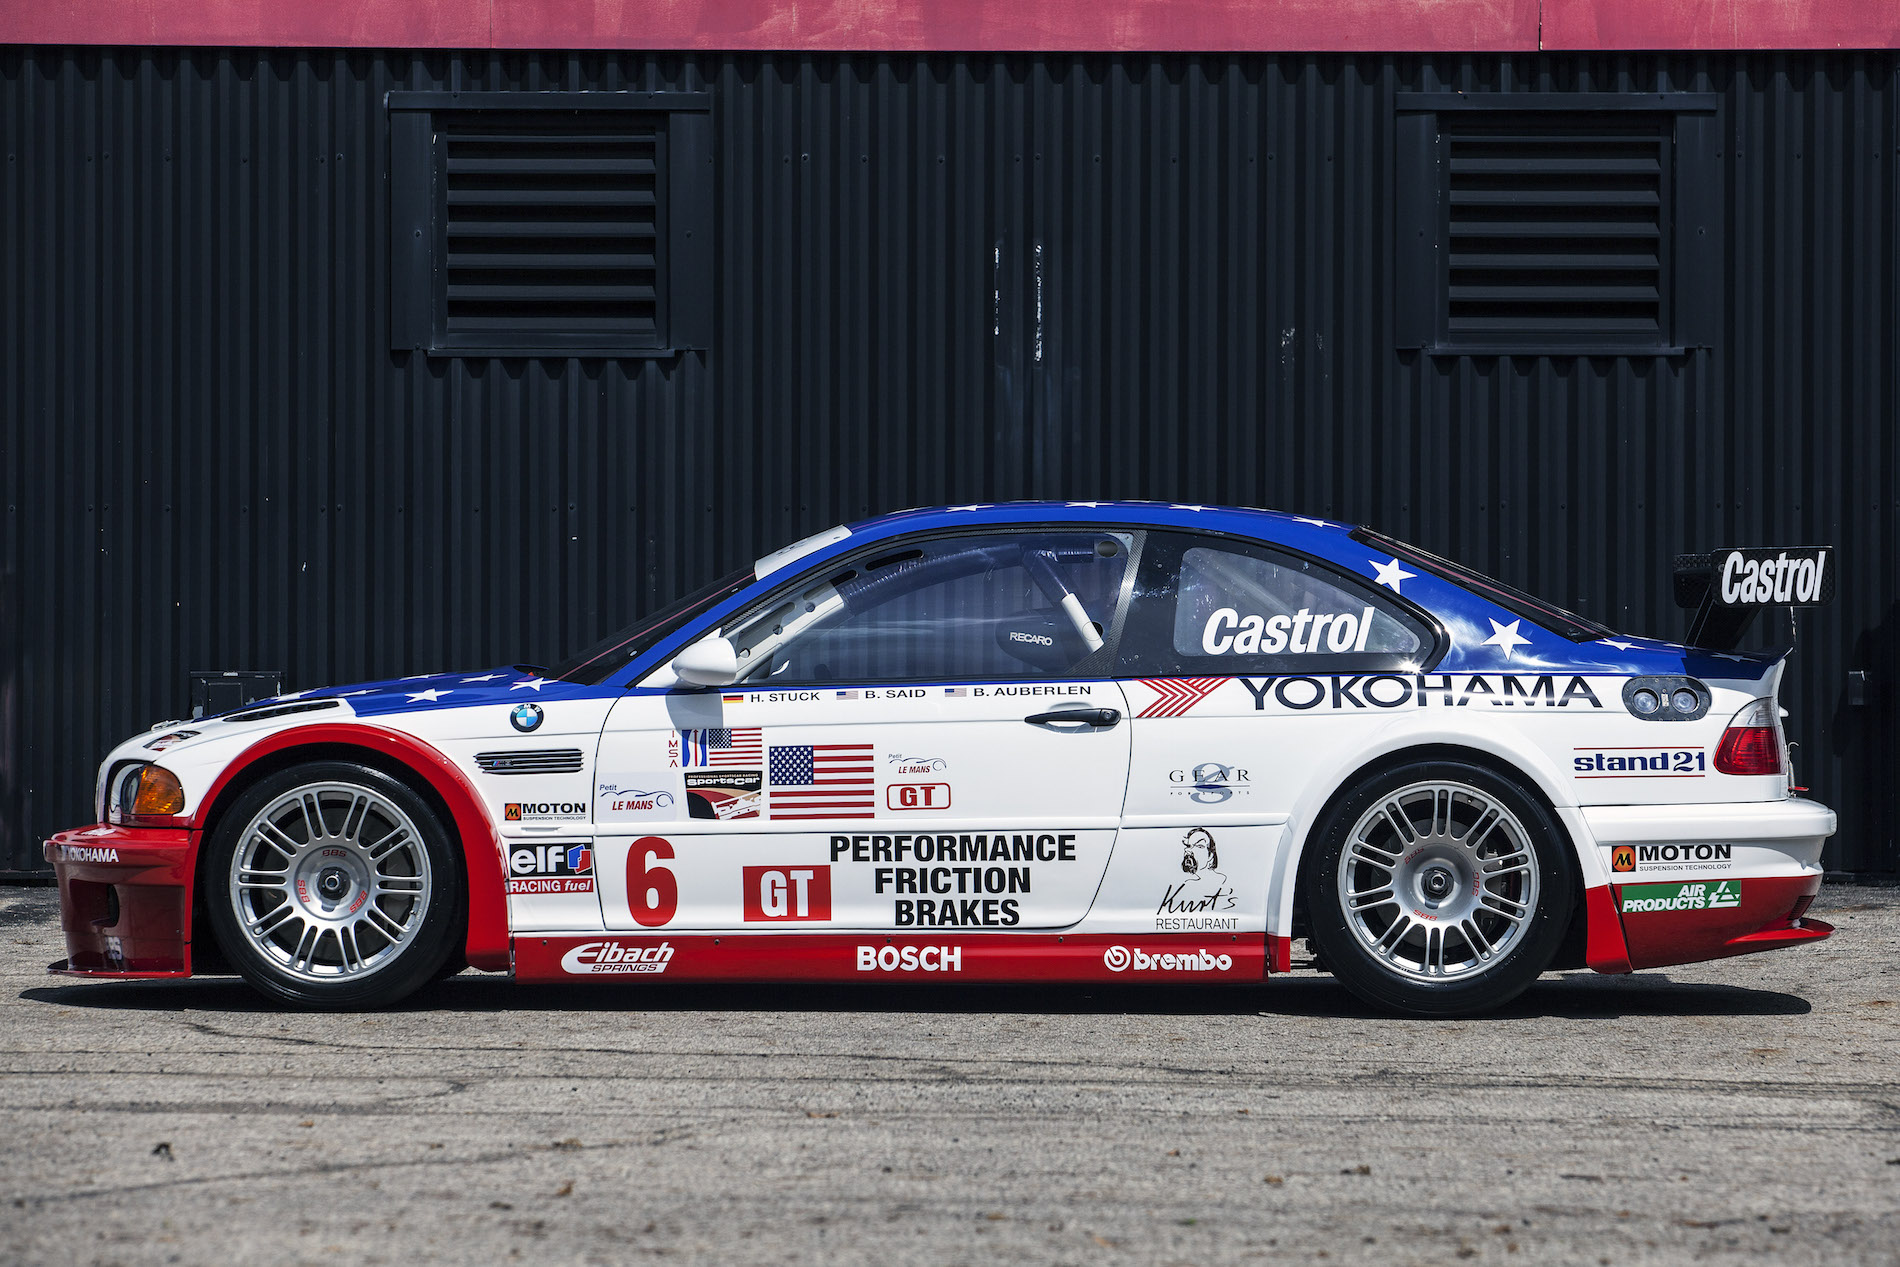 e46 m3 gtr race and road car presented at pebble beach. Black Bedroom Furniture Sets. Home Design Ideas